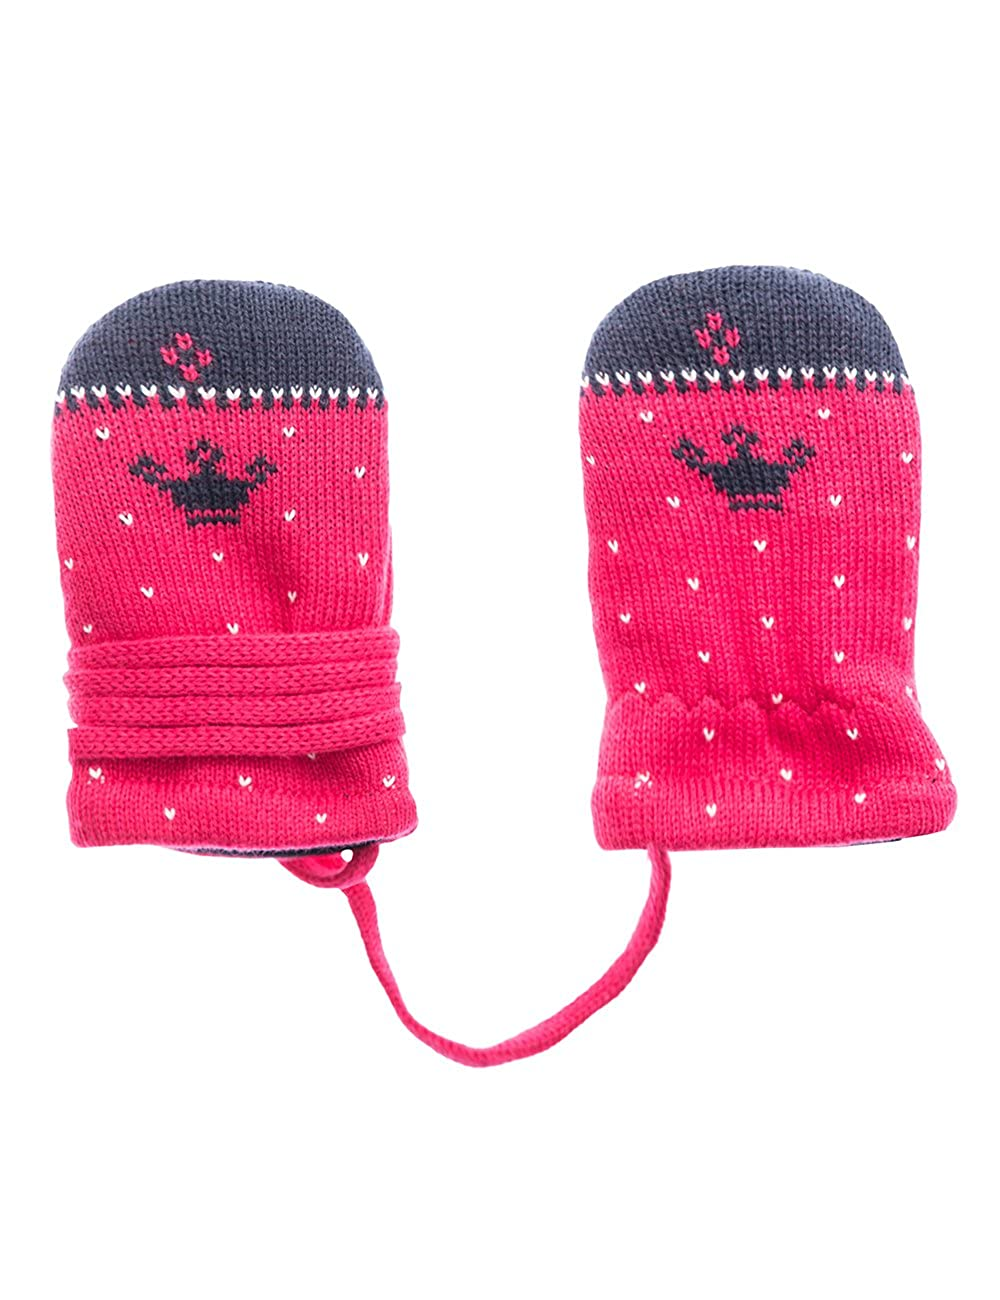 maximo Baby Fausthandschuh Ohne Daumen Gloves